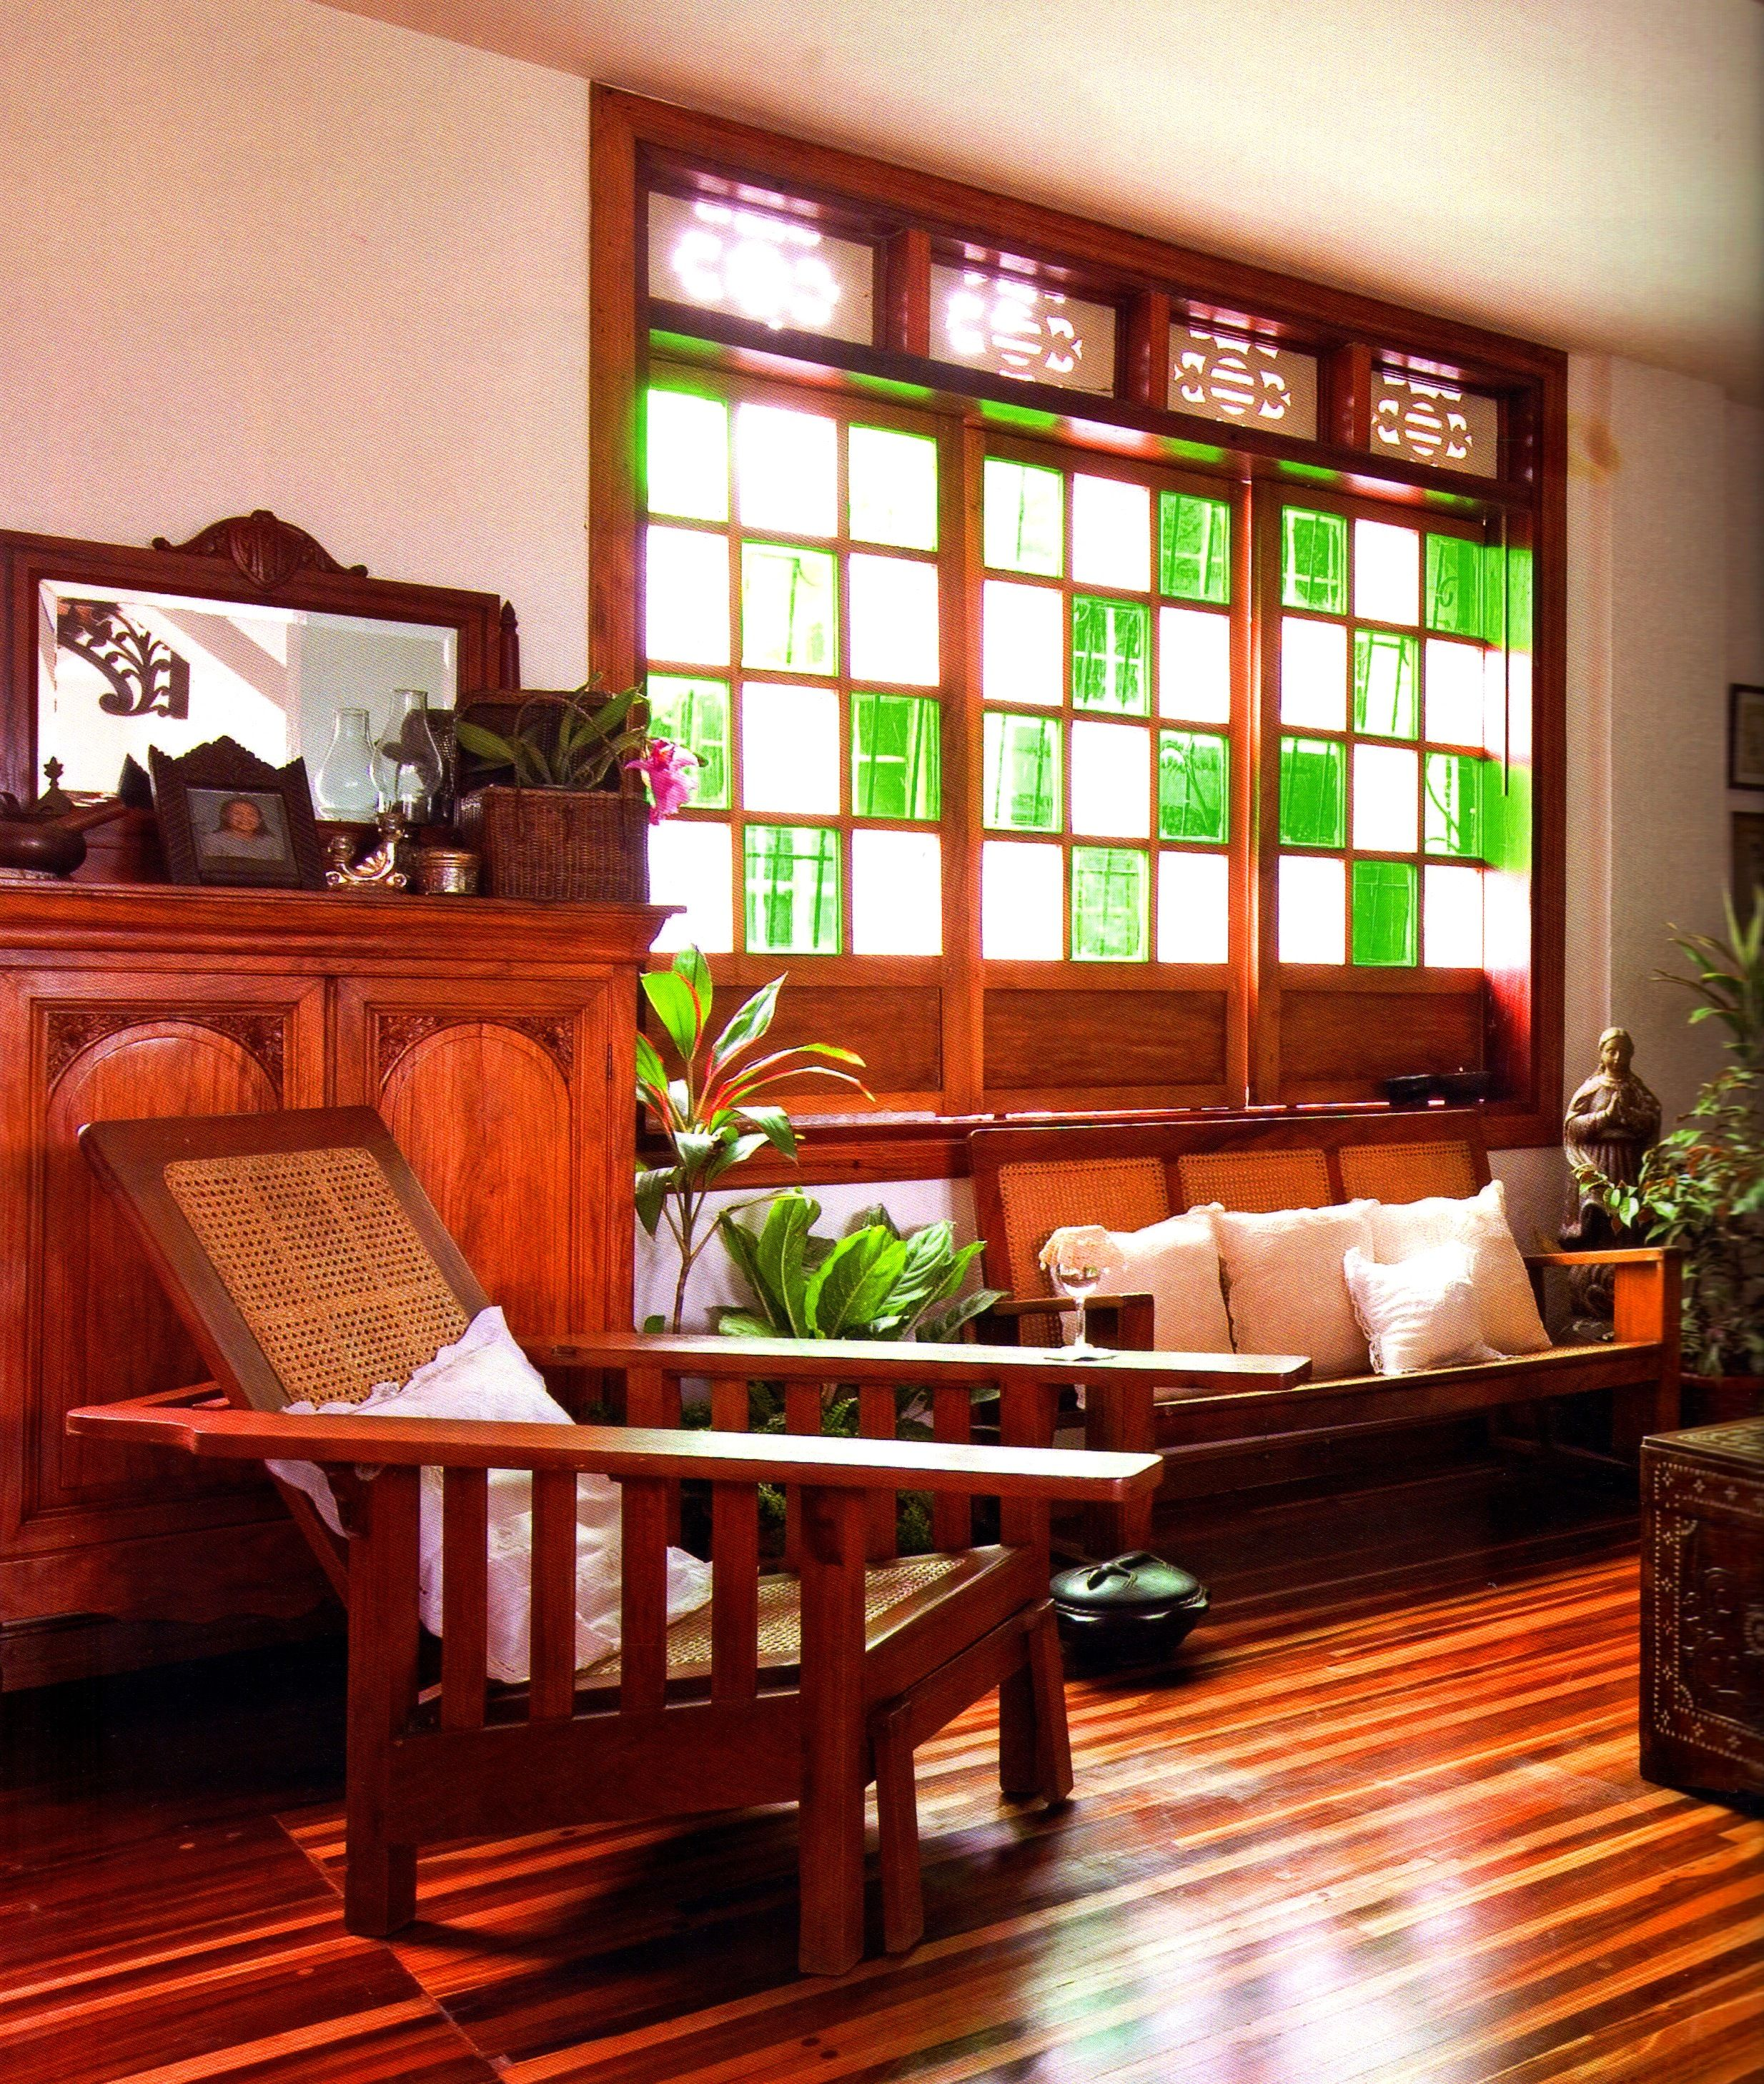 filipino style interior design | philippines | pinterest | style